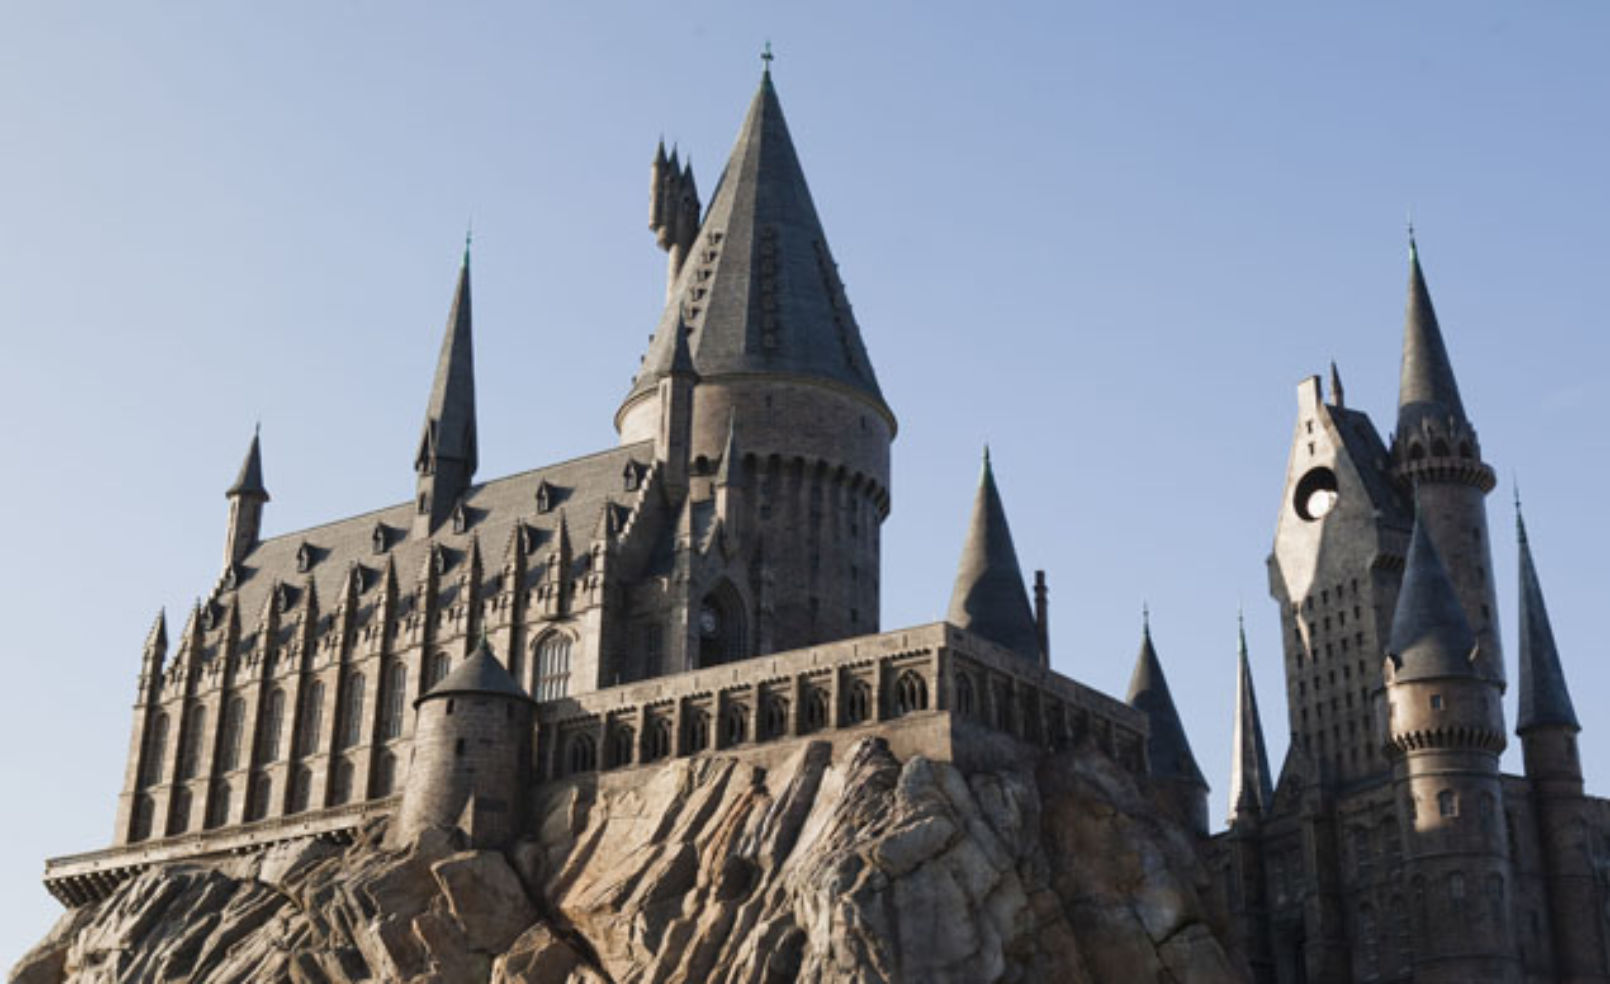 Guests experience the magnificence of Hogwarts castle as it towers above Hogsmeade at The Wizarding World of Harry Potter, only at Universal Orlando Resort.